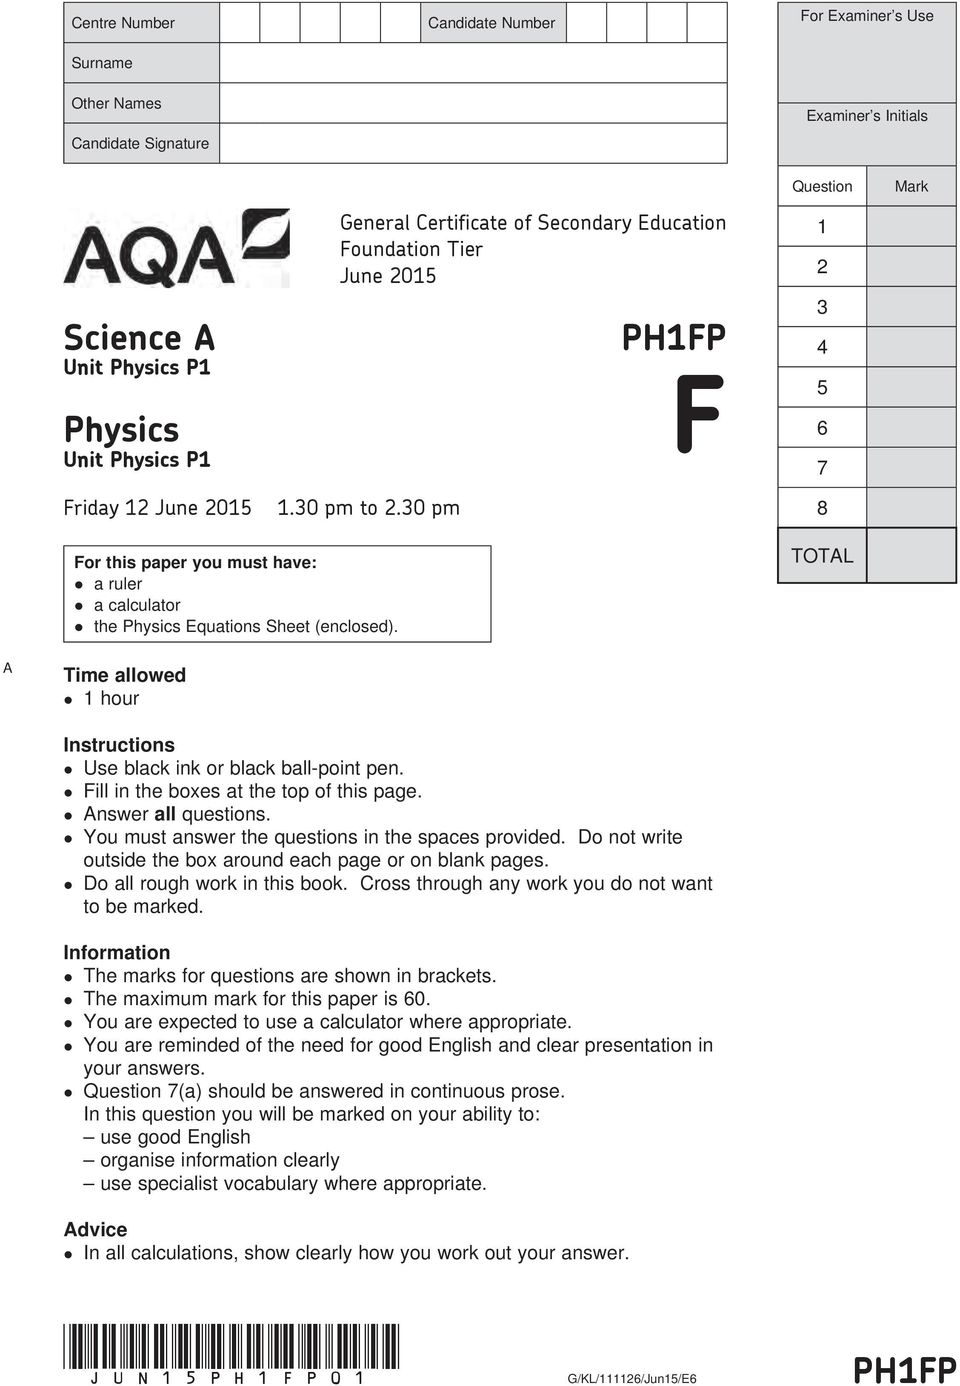 30 pm PH1FP F 1 2 3 4 5 6 7 8 For this paper you must have: a ruler a calculator the Physics Equations Sheet (enclosed). TOTAL A Time allowed 1 hour Instructions Use black ink or black ball-point pen.